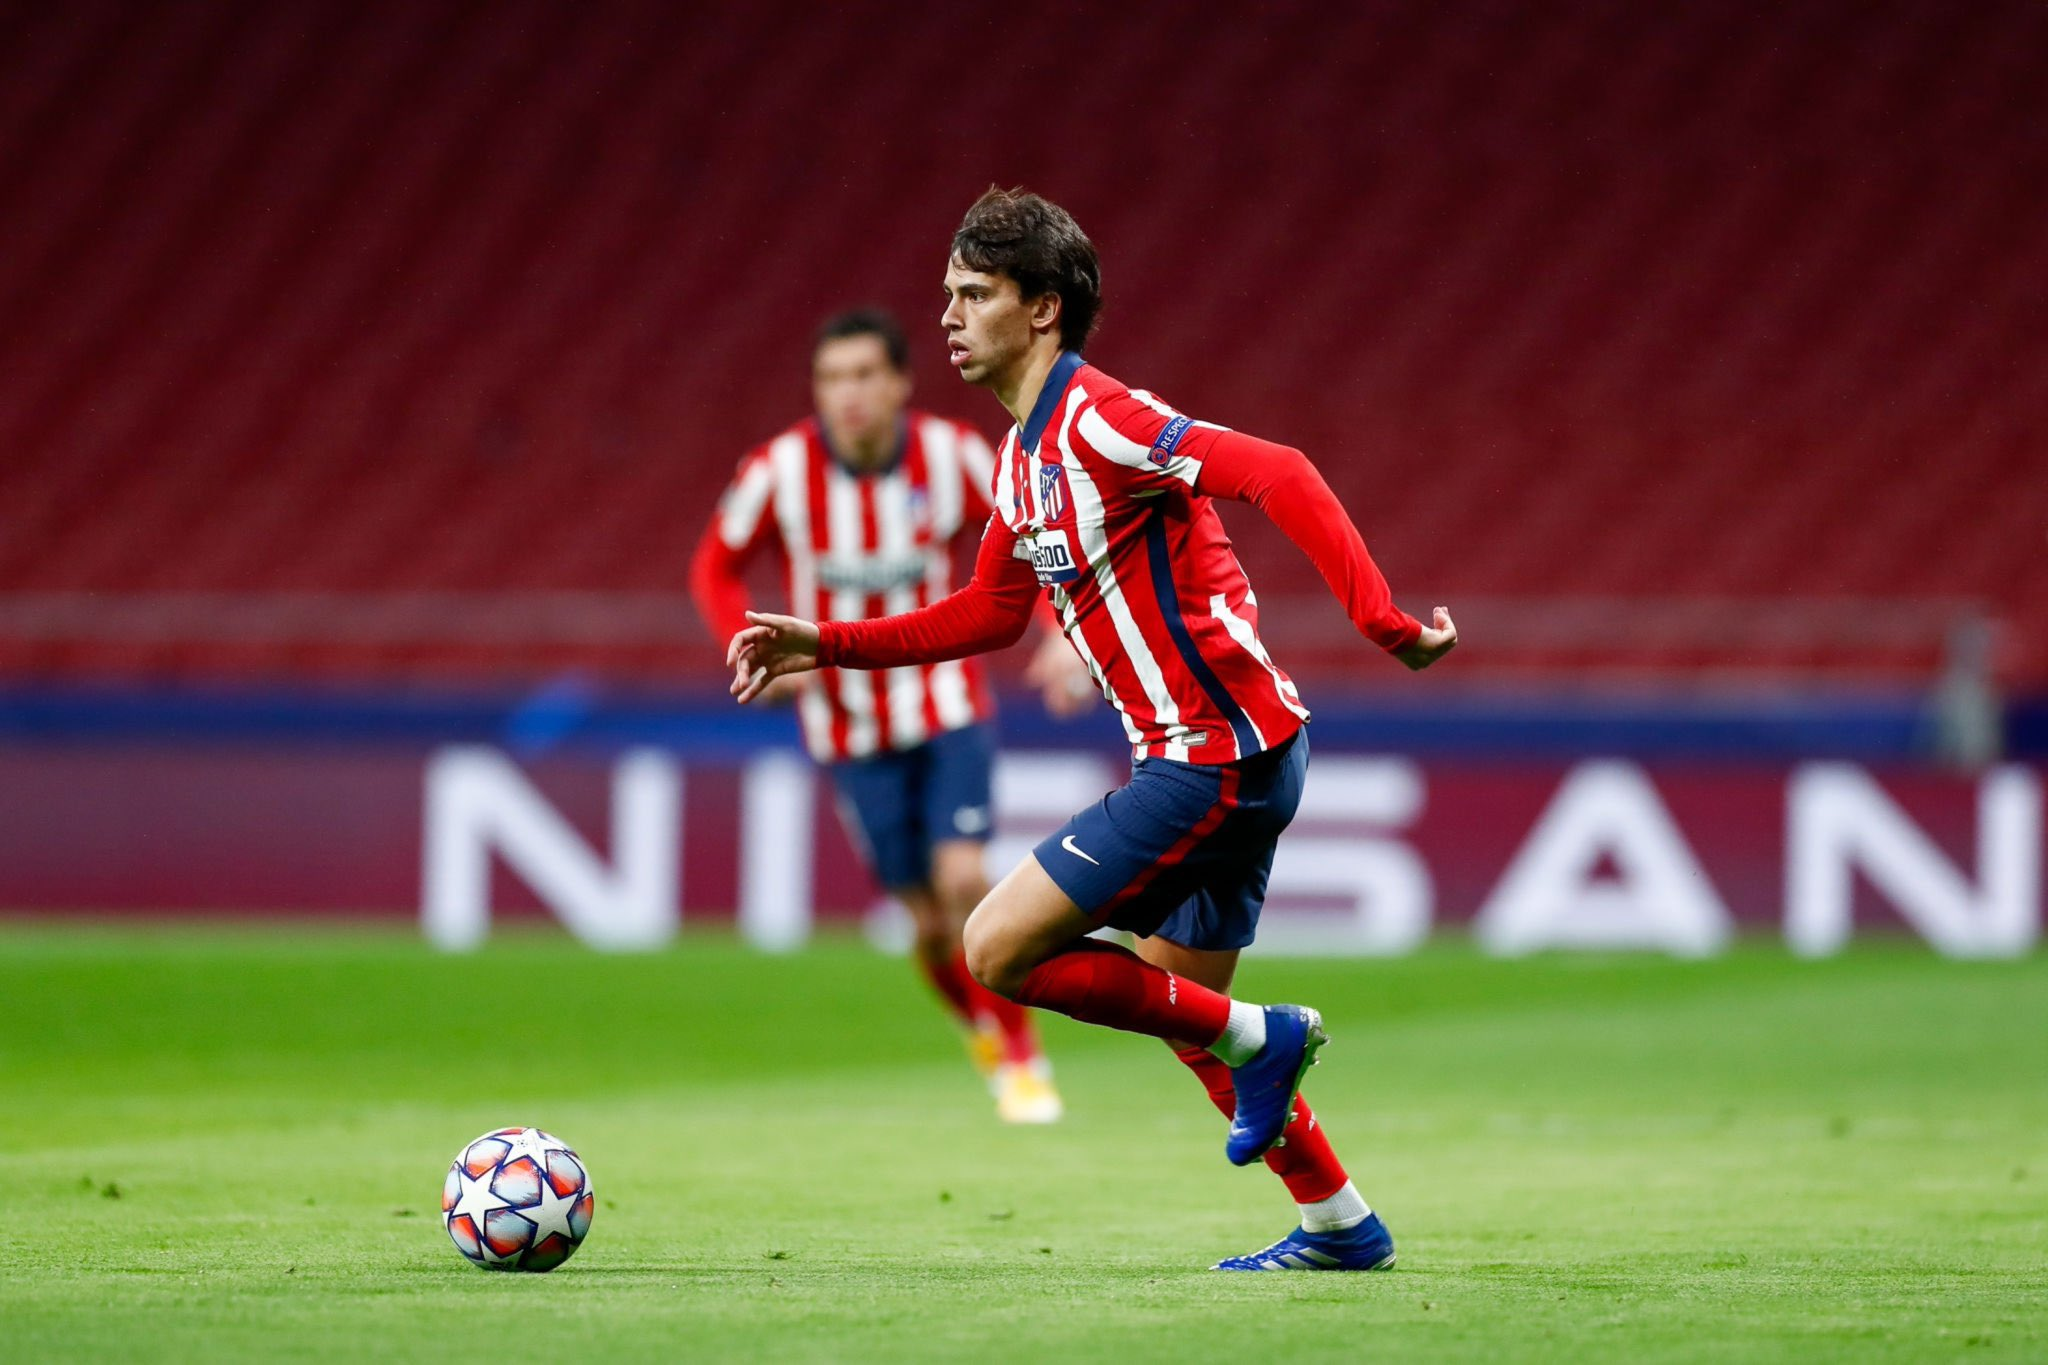 Atletico Madrid star Joao Felix tests positive for Covid-19